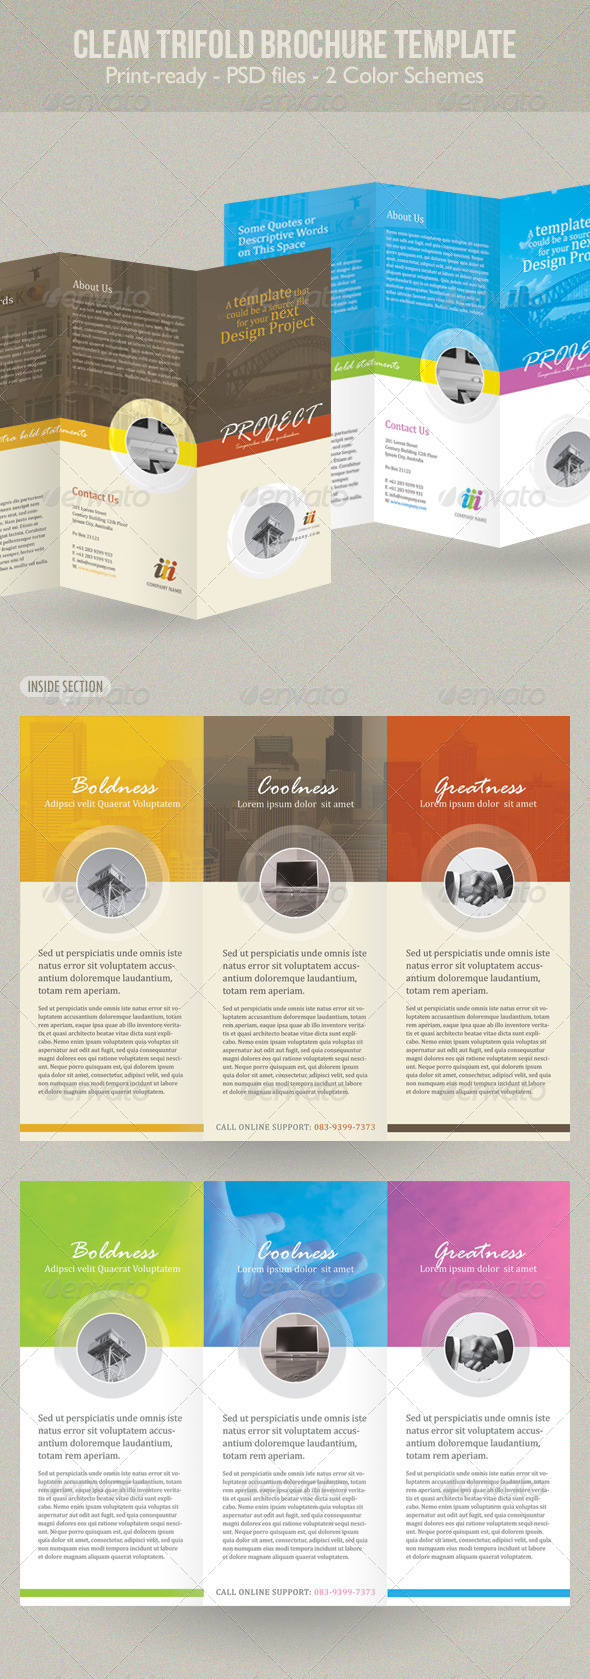 GraphicRiver Clean Trifold Brochure Template 234251